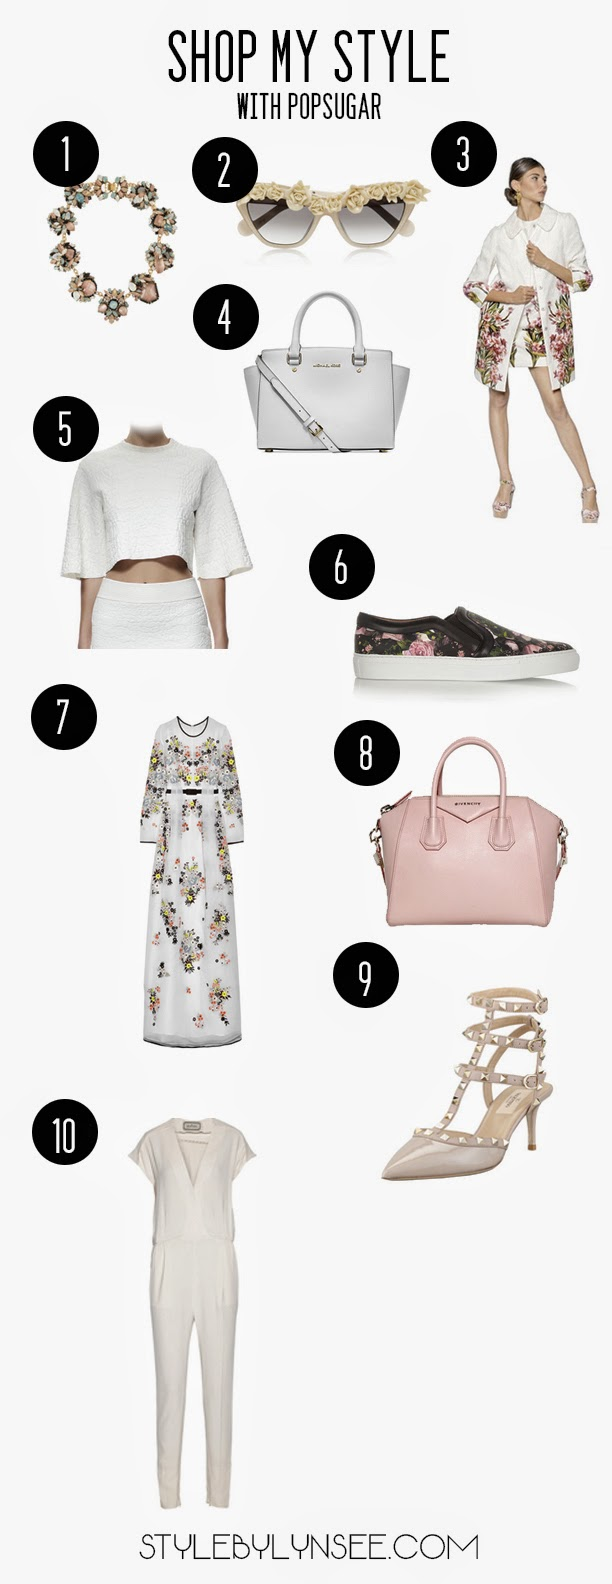 popsugar, anna karin karisson, valentino, valentino rockstud, erickson beamon, swarovski, dolce and gabbana, givency, skate shoes, sneakers, spring trends 2014, spring fashion, fashion blogger, top fashion blogger, style by lynsee, lynsee hee kyeong, erdem, popsugar select, popsugar bloggers, floral fashion, white handbag, michael kors, givenchy handbags, alexander mcqueen, miami, new york fashion week, carolina herrera, lanvin, alice and olivia, margiela, moschino, erdem,